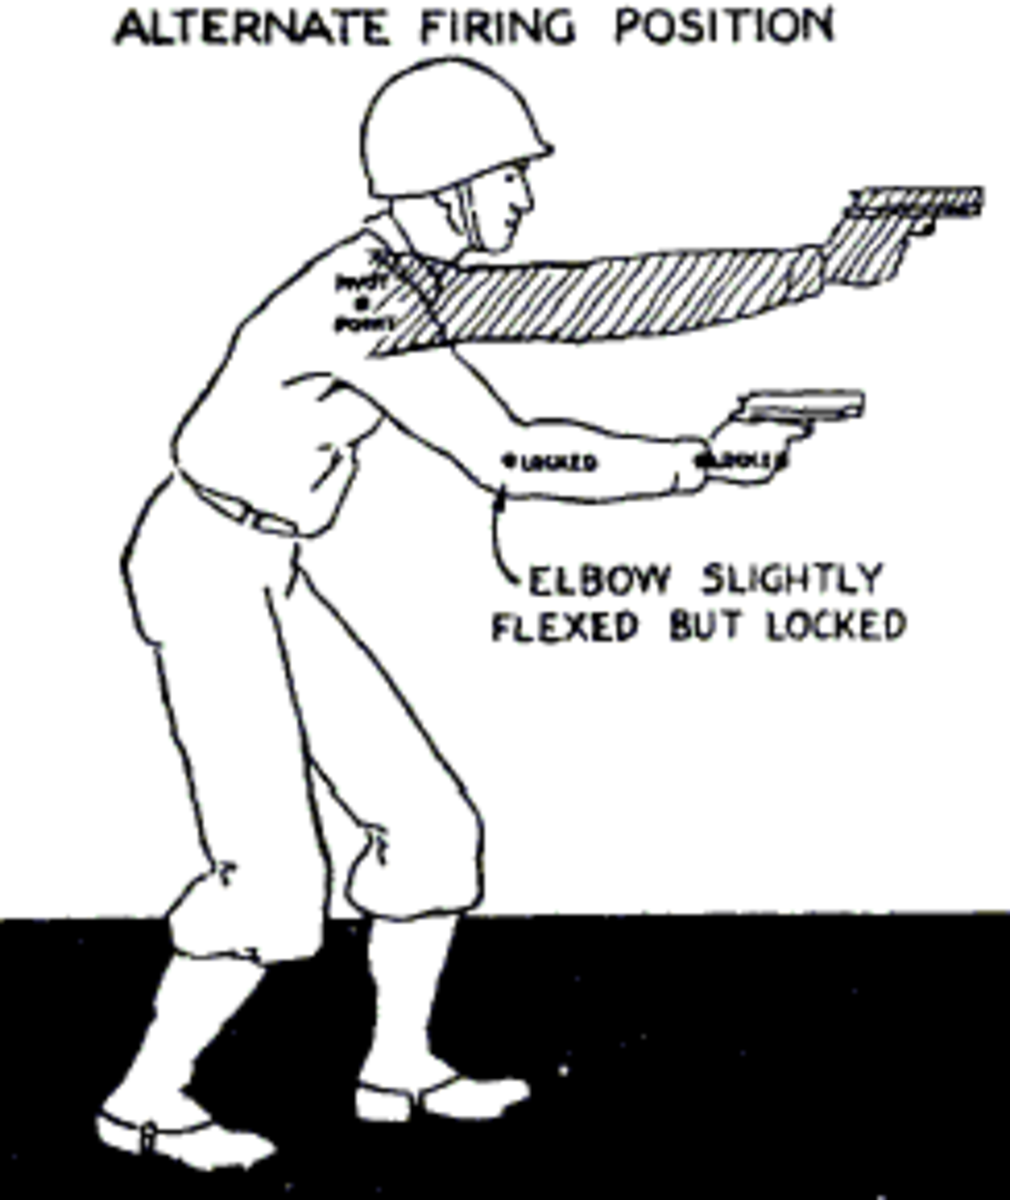 Image from a 1940s era USMC training manual shows the basic point shooting stance.